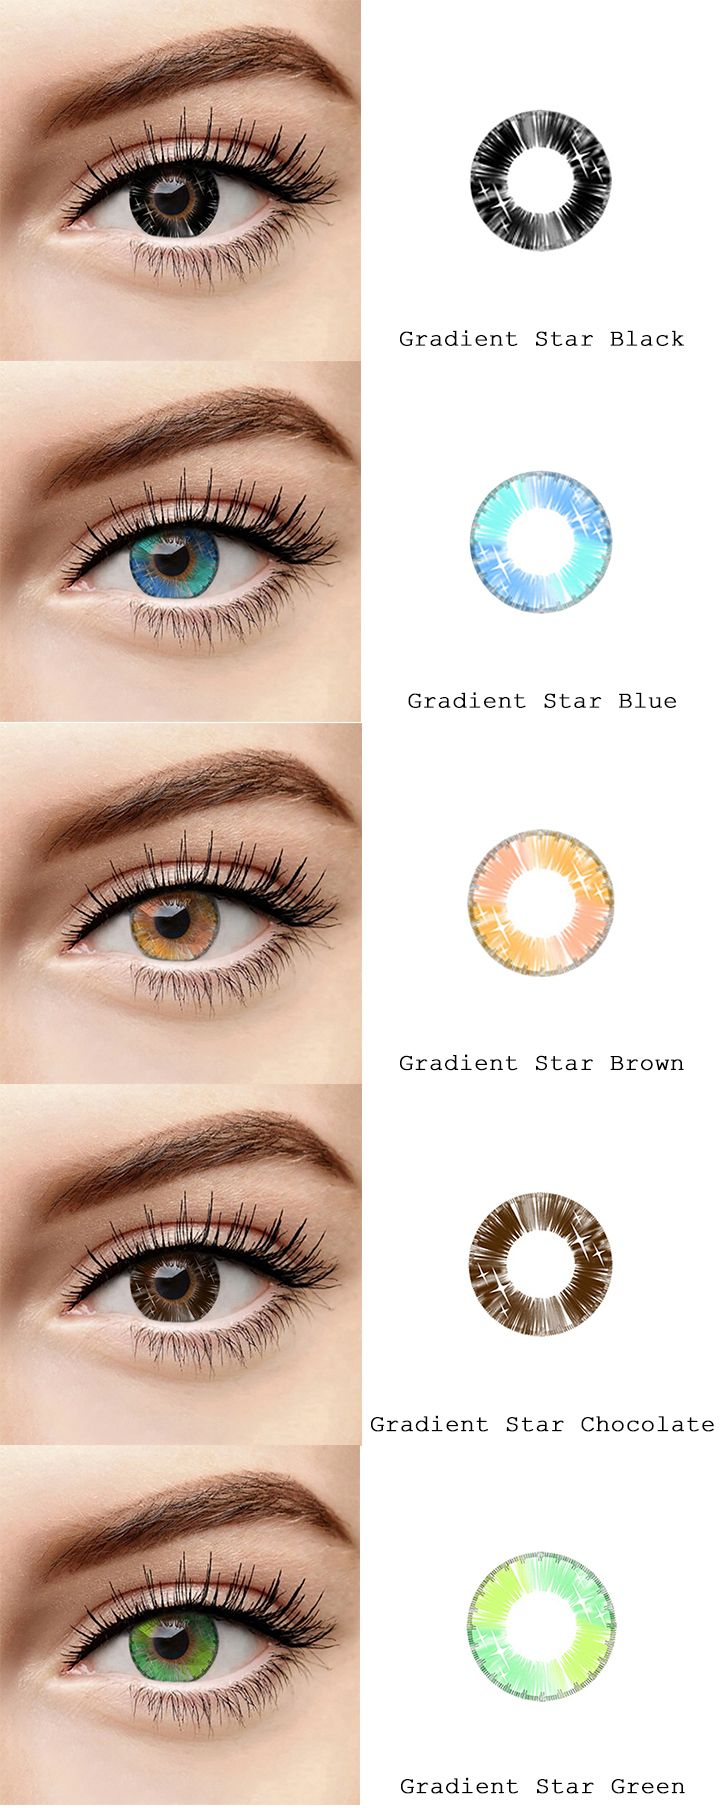 7e304db55b microeyelenses.com Colored contact lenses online shop. Gradient Star  series  Black